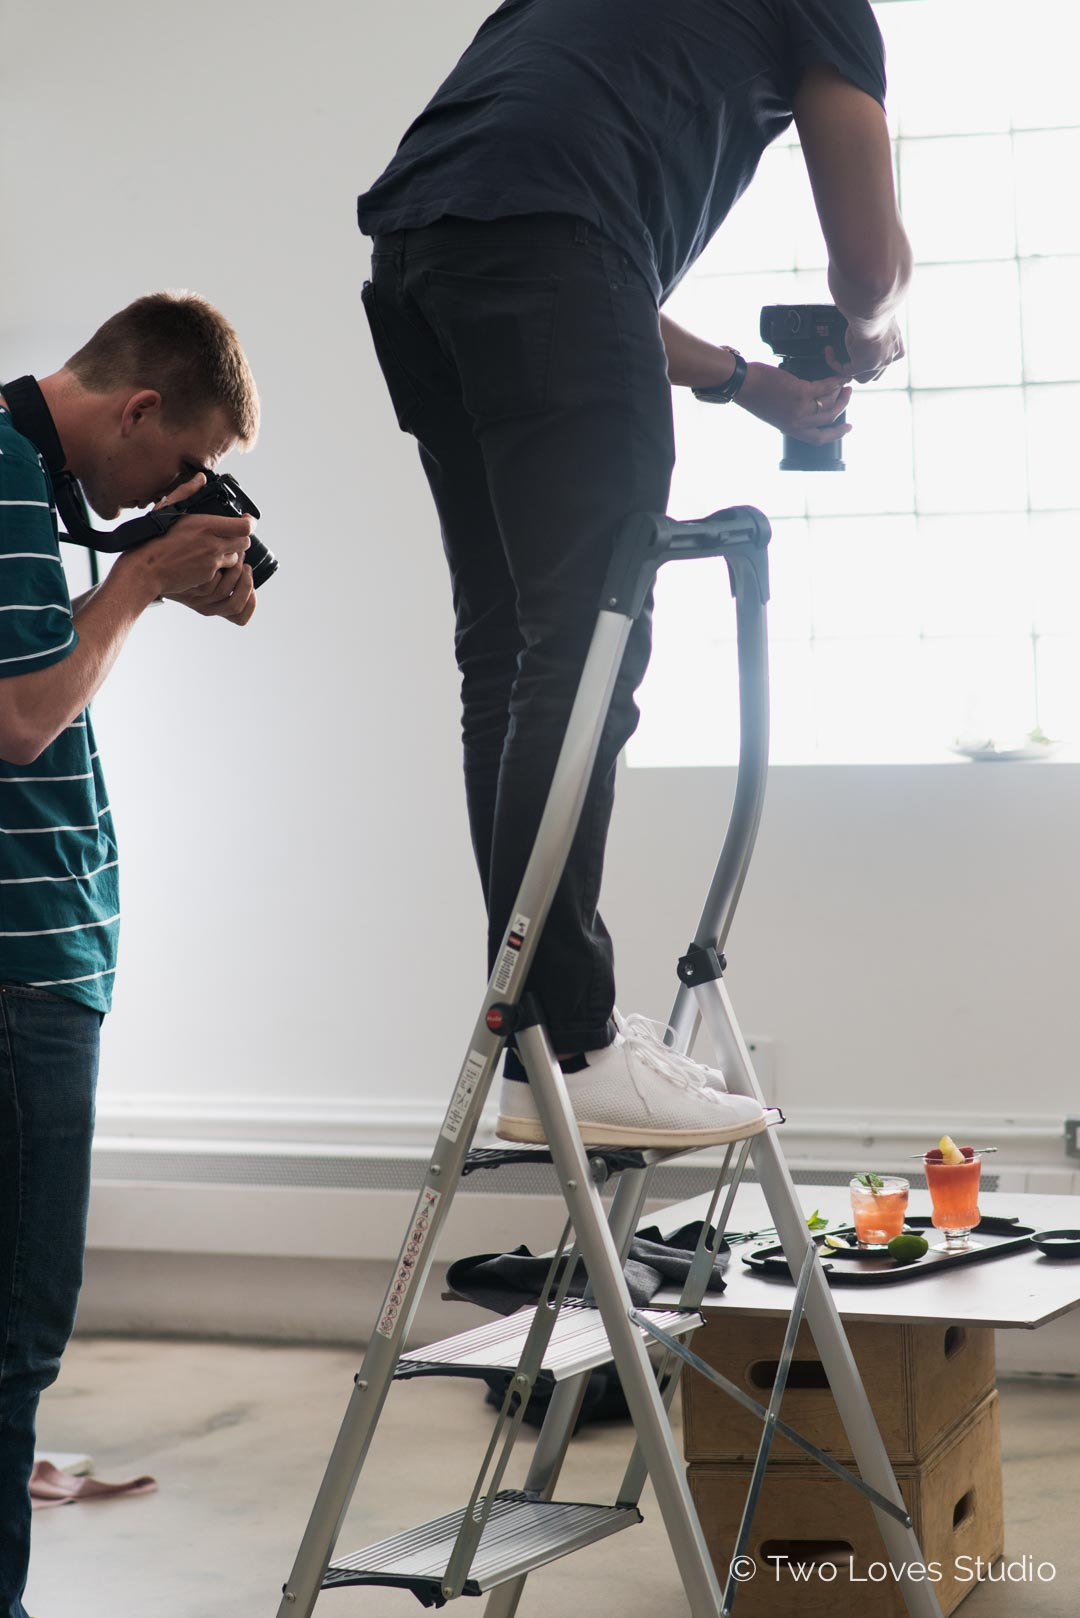 9 Things Attendees Learned at Our Toronto Composition and Styling Food Photography Workshop. Click to read and see the images!